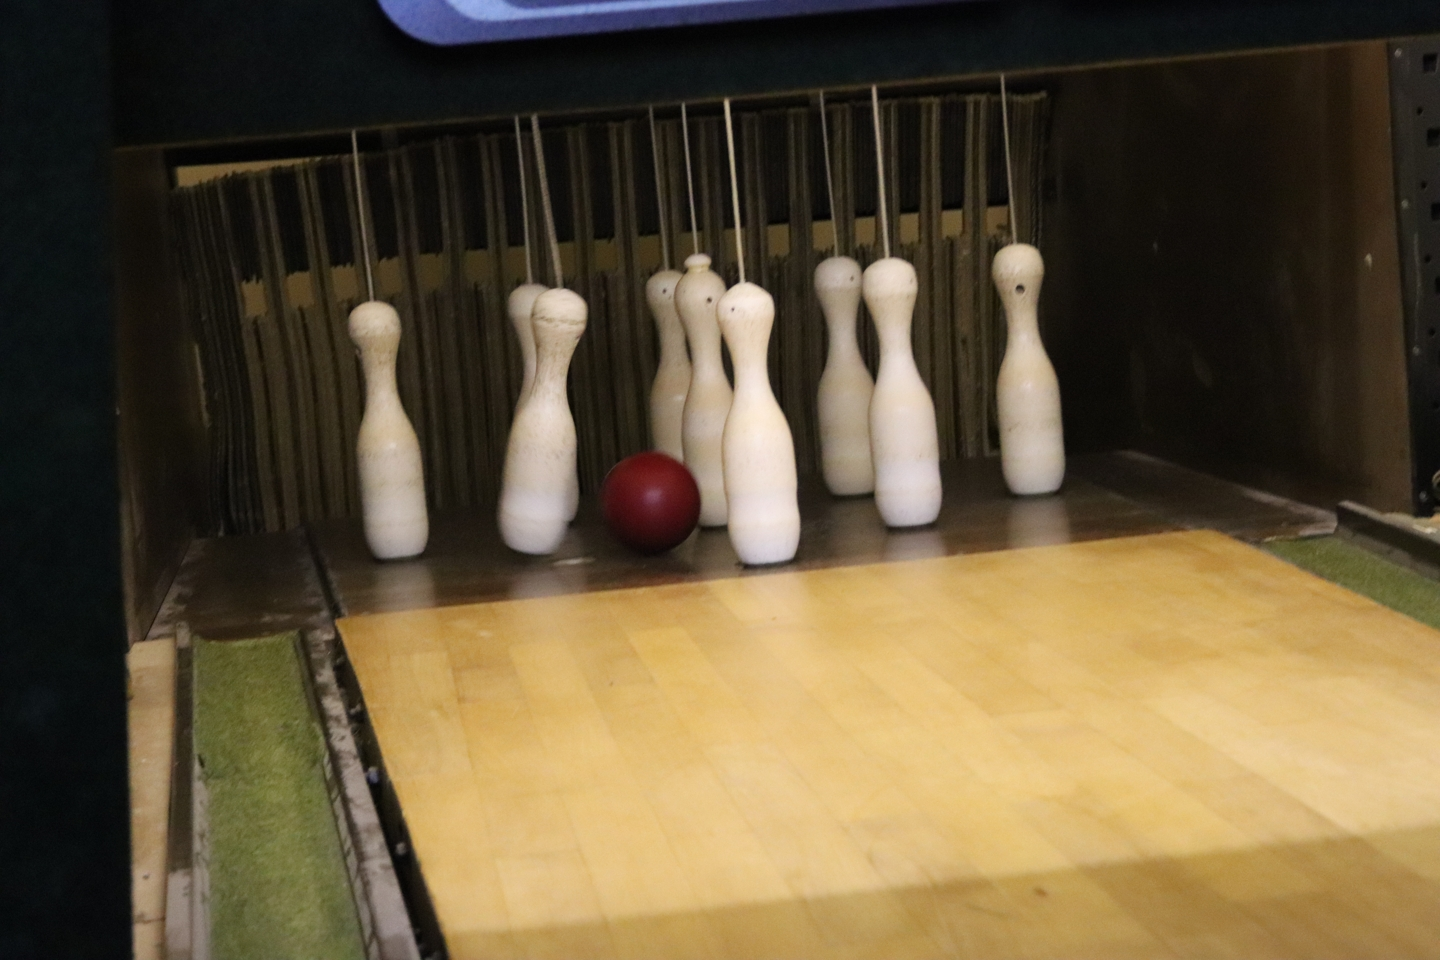 Bowling ball about to hit the bowling pins.